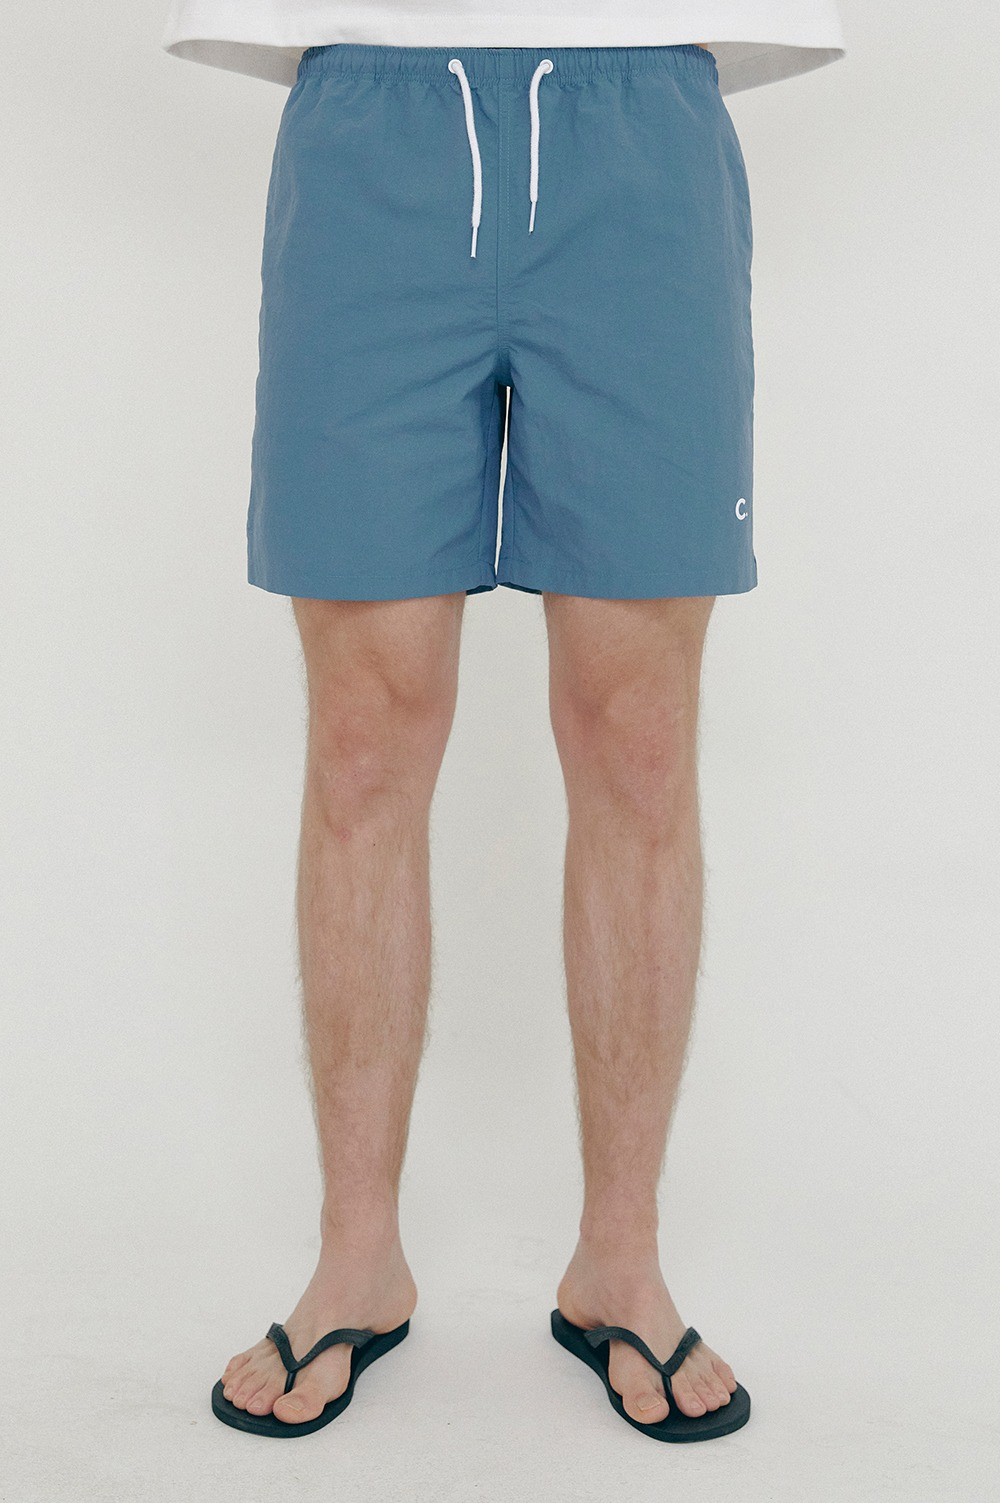 clove - [SS21 clove] New Summer Shorts_Men Blue